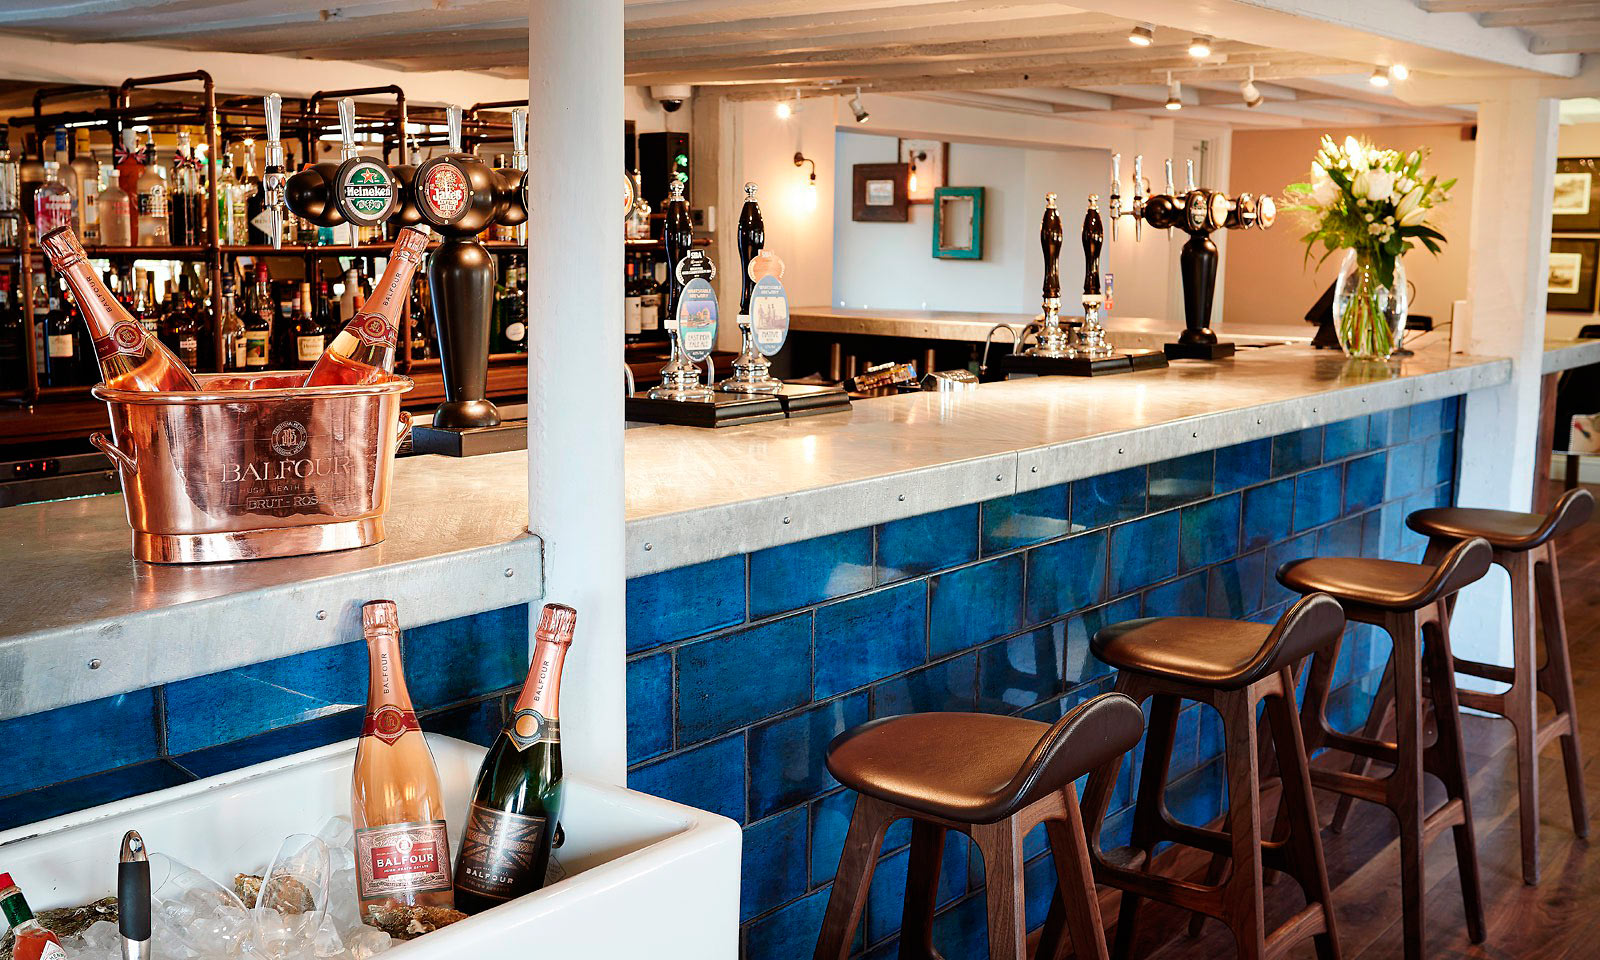 The Tickled Trout. Our commercial refurbishment for Hush Heath Hospitality. Commissioned to manufacture a bespoke, custom made, galvanised bar and copper drinks display, modelled around a traditional fishmongers. A bespoke design, installed by the skilled joiners at Mounts Hill Woodcraft.